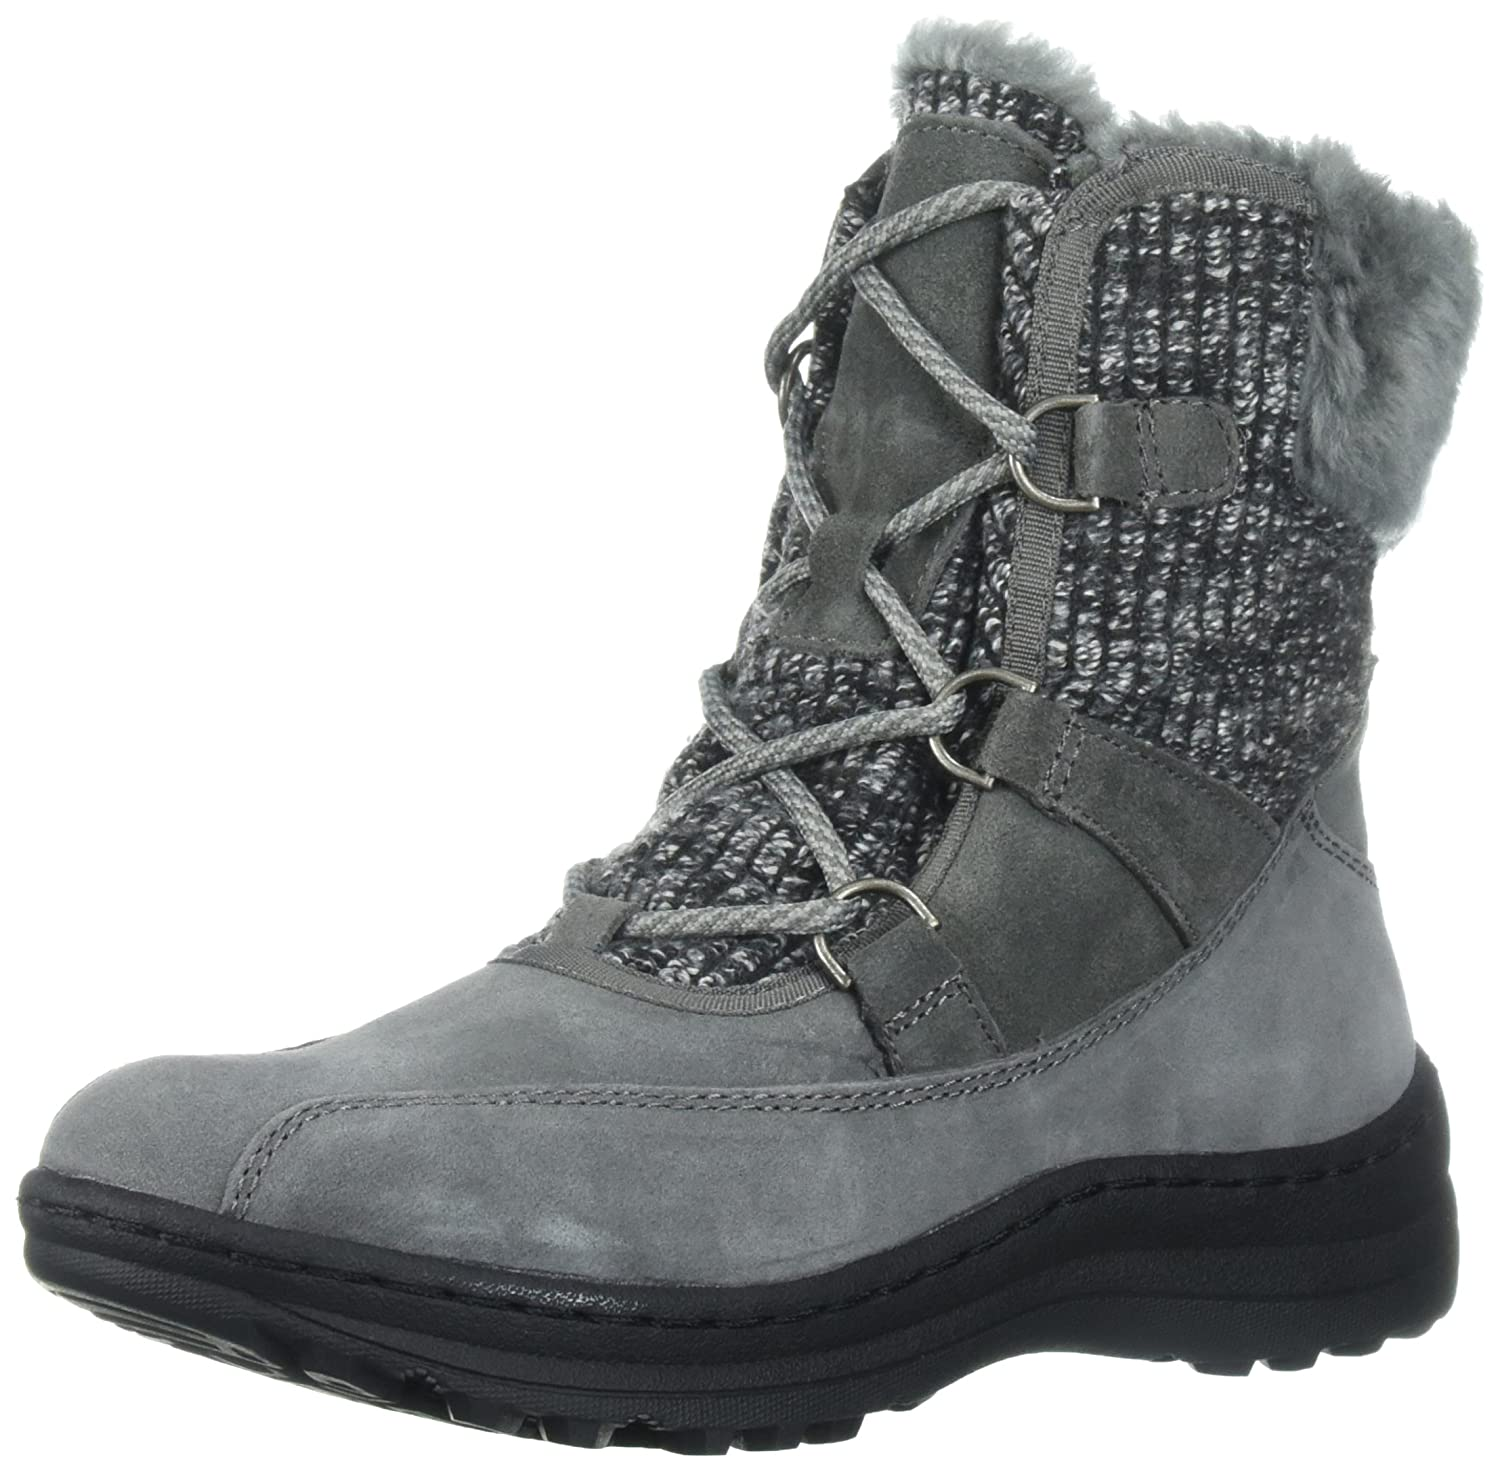 BareTraps Women's Aero Snow Boot, Black, 7.5 M US B071HHKFNX 9 B(M) US|Dk Grey